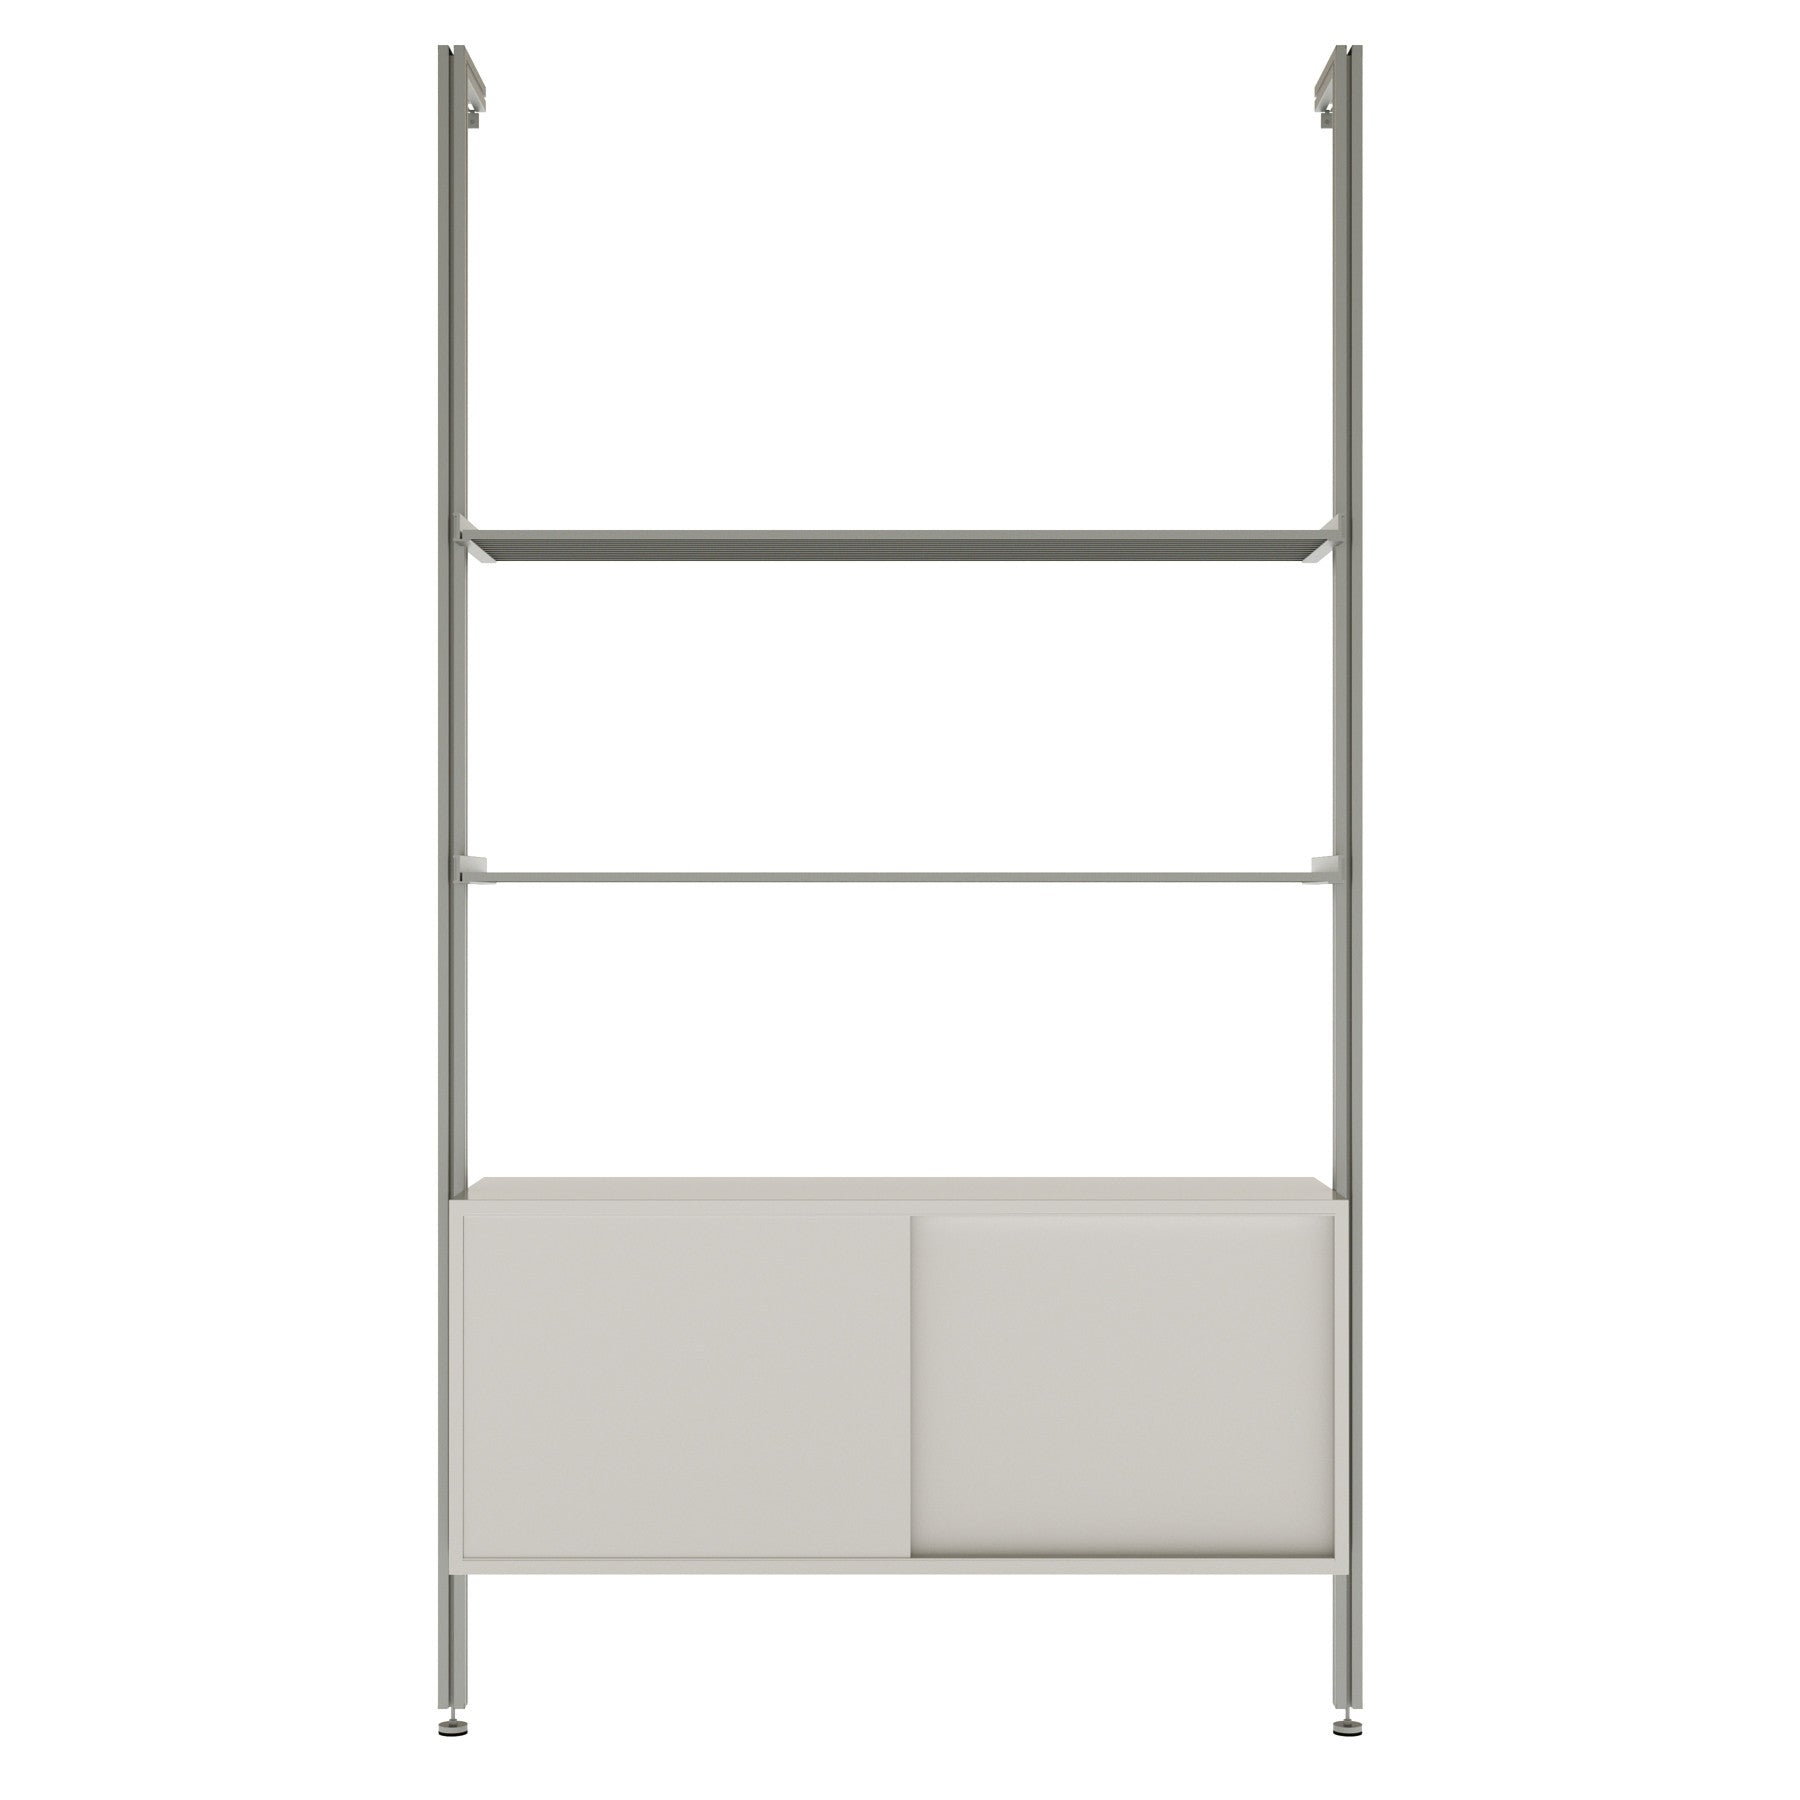 Rad51sld 51 Pole Mounted Retail Aluminum Shelving With Sliding Door